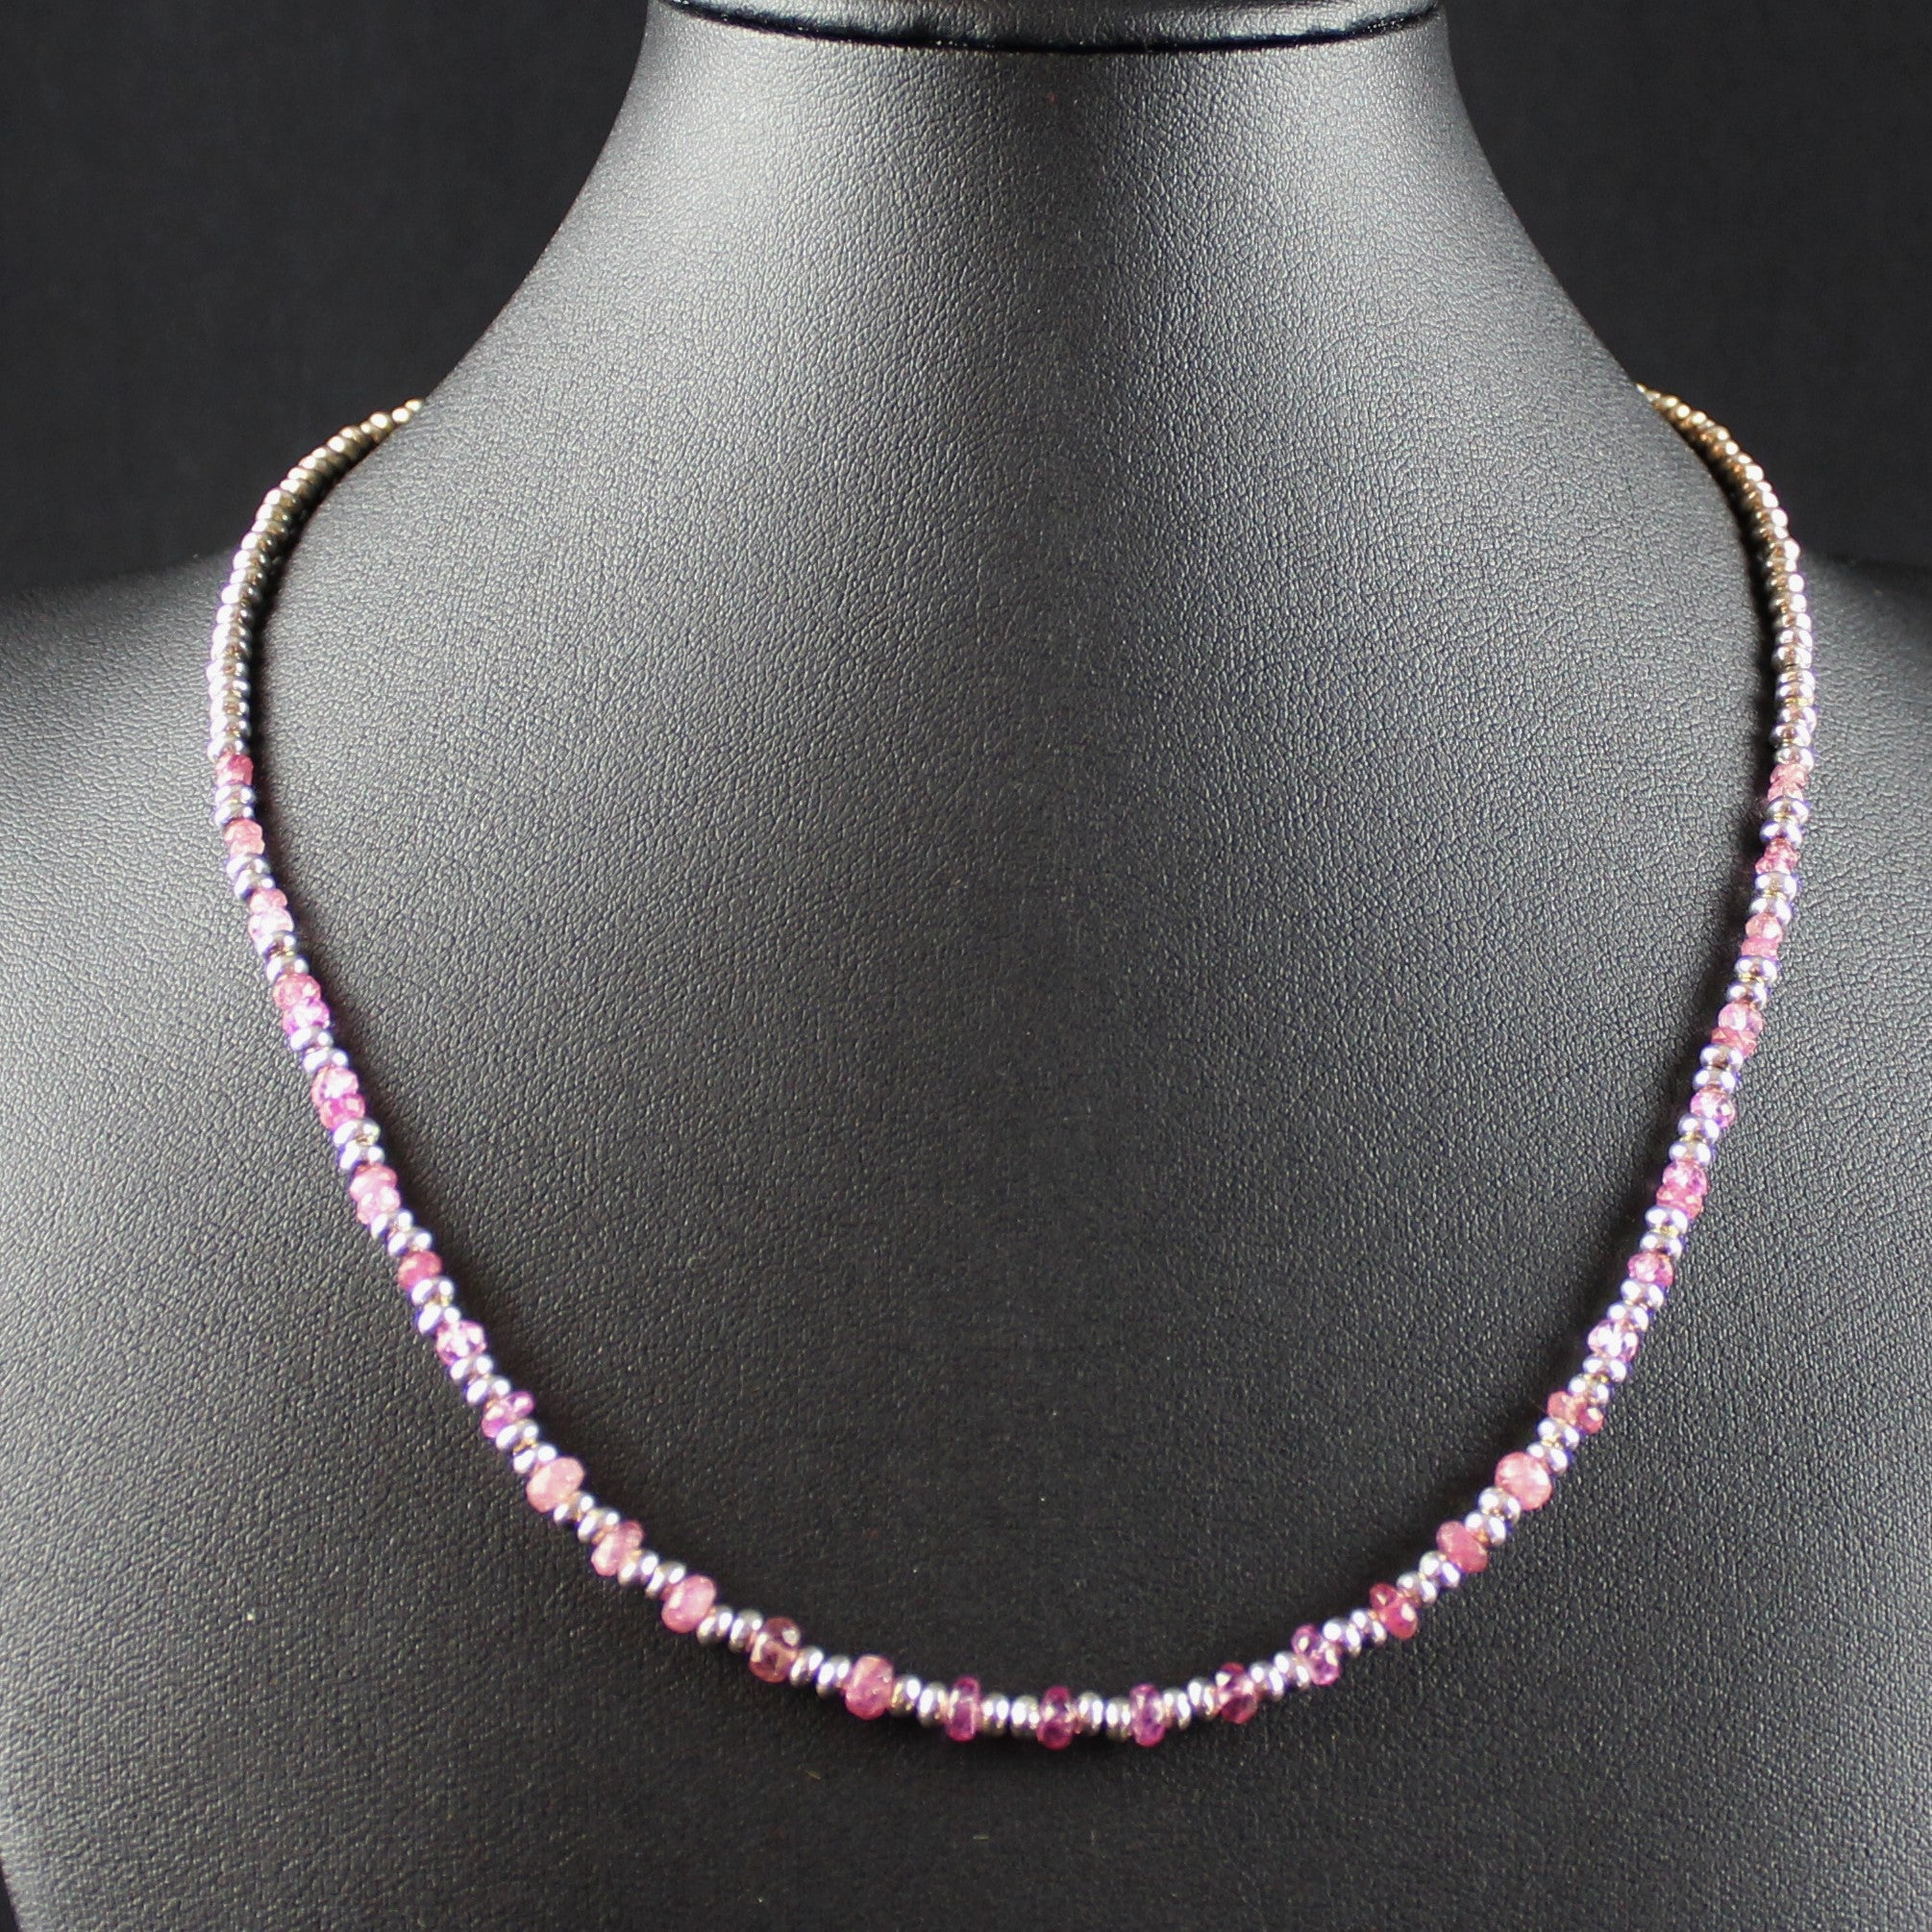 Susan M - Faceted Pink Tourmaline Necklace